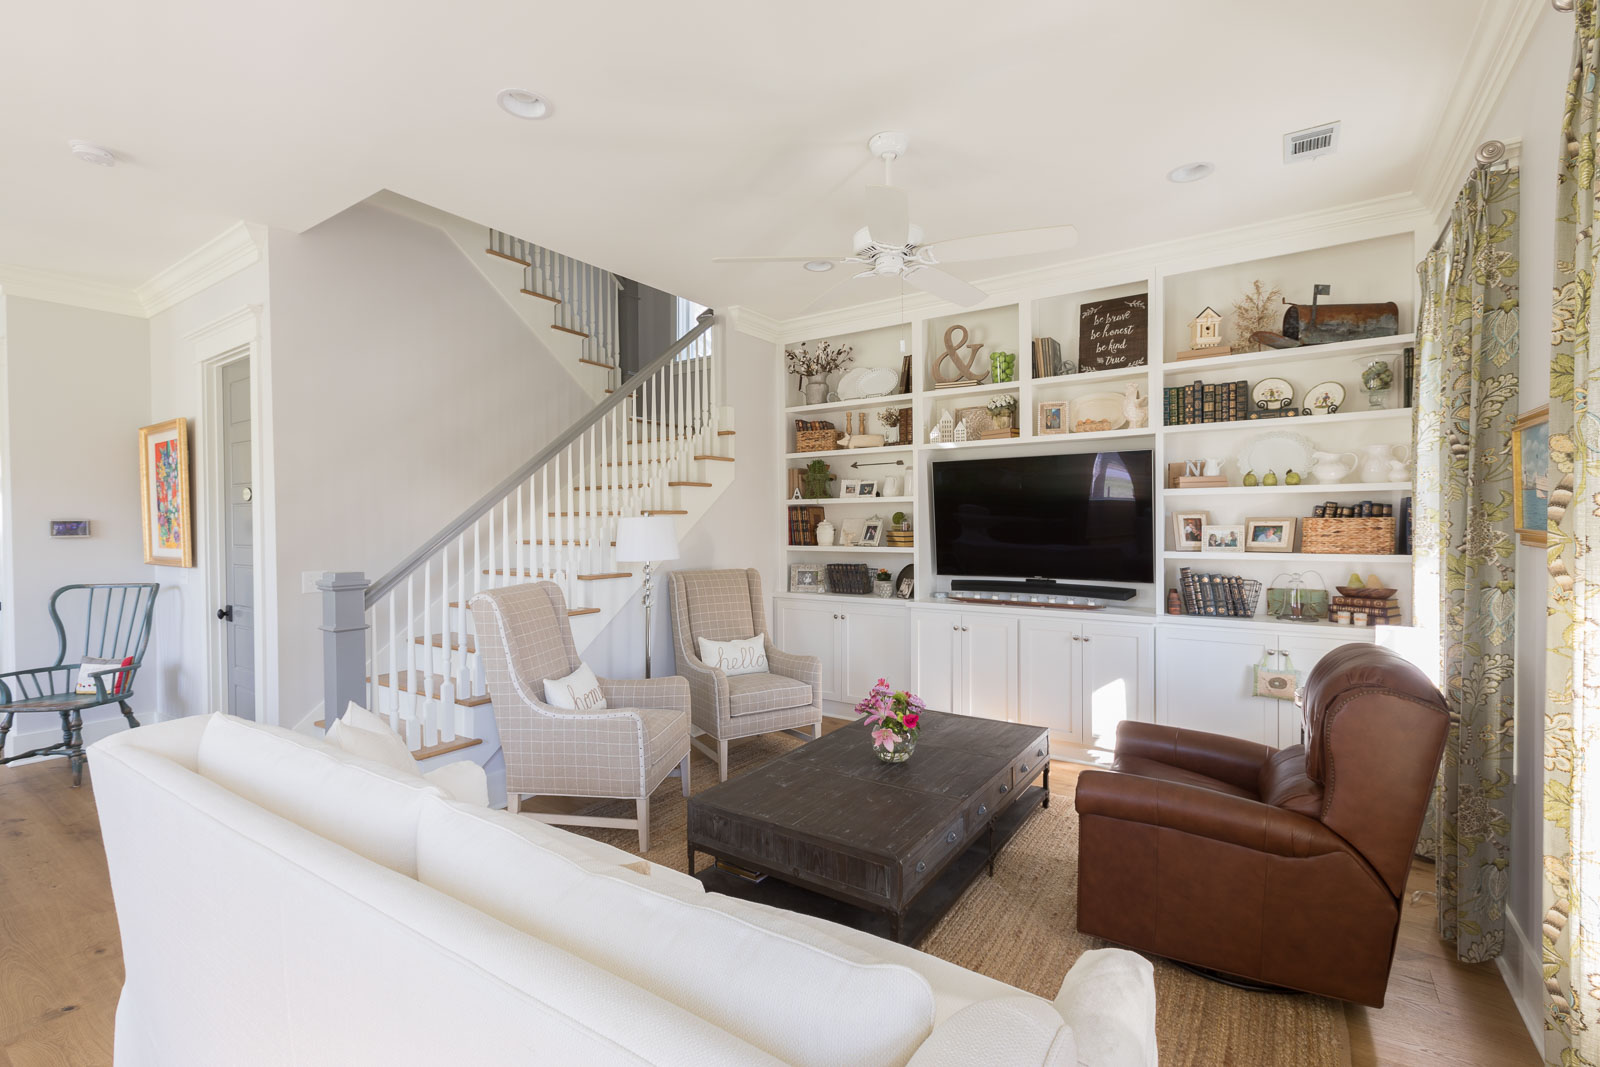 Interior architectural photography Beaufort, SC